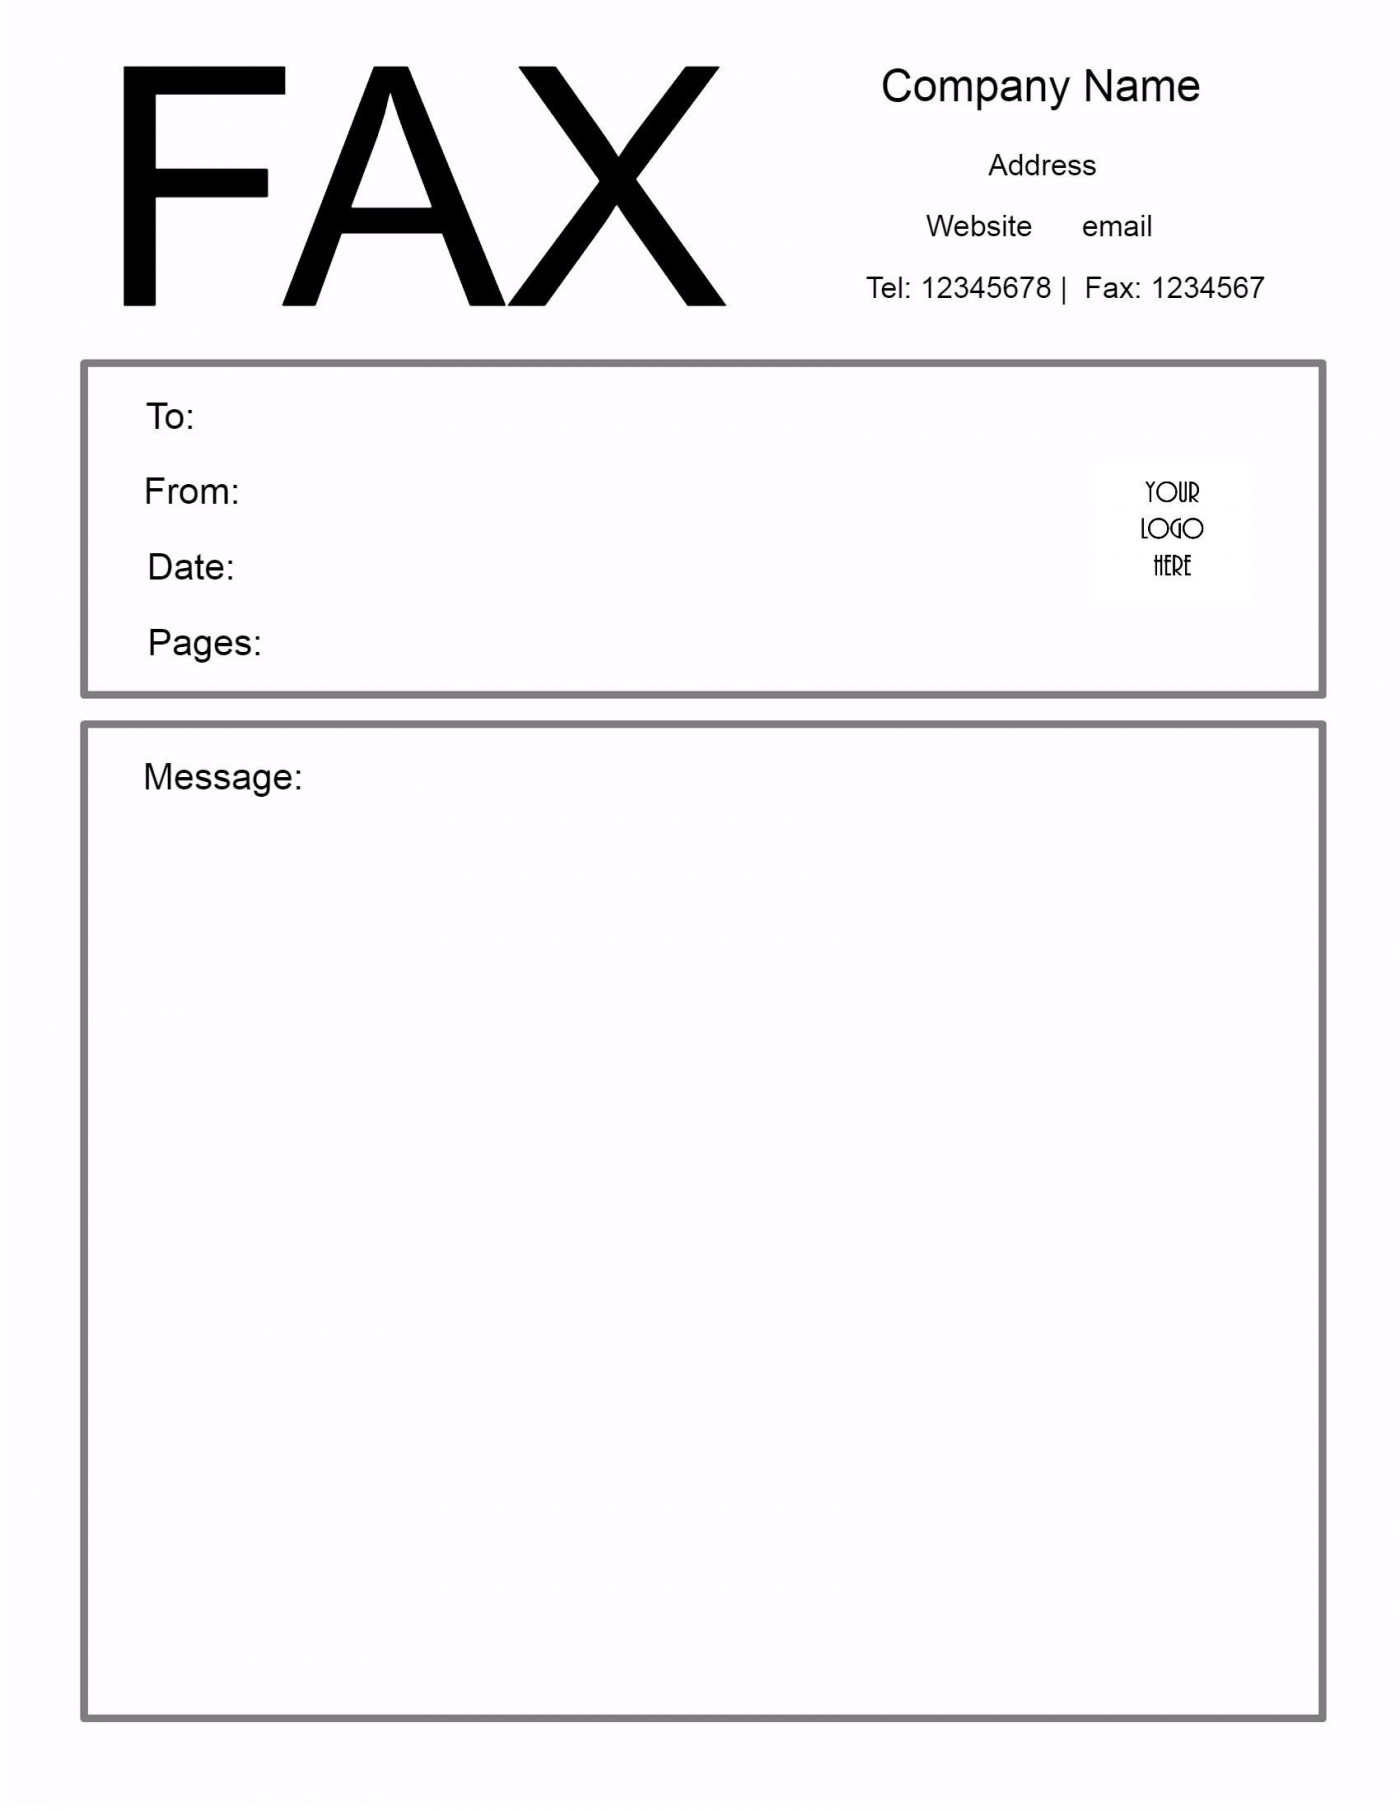 009 Excellent General Fax Cover Letter Template Highest Clarity  Sheet Word Confidential Example1400